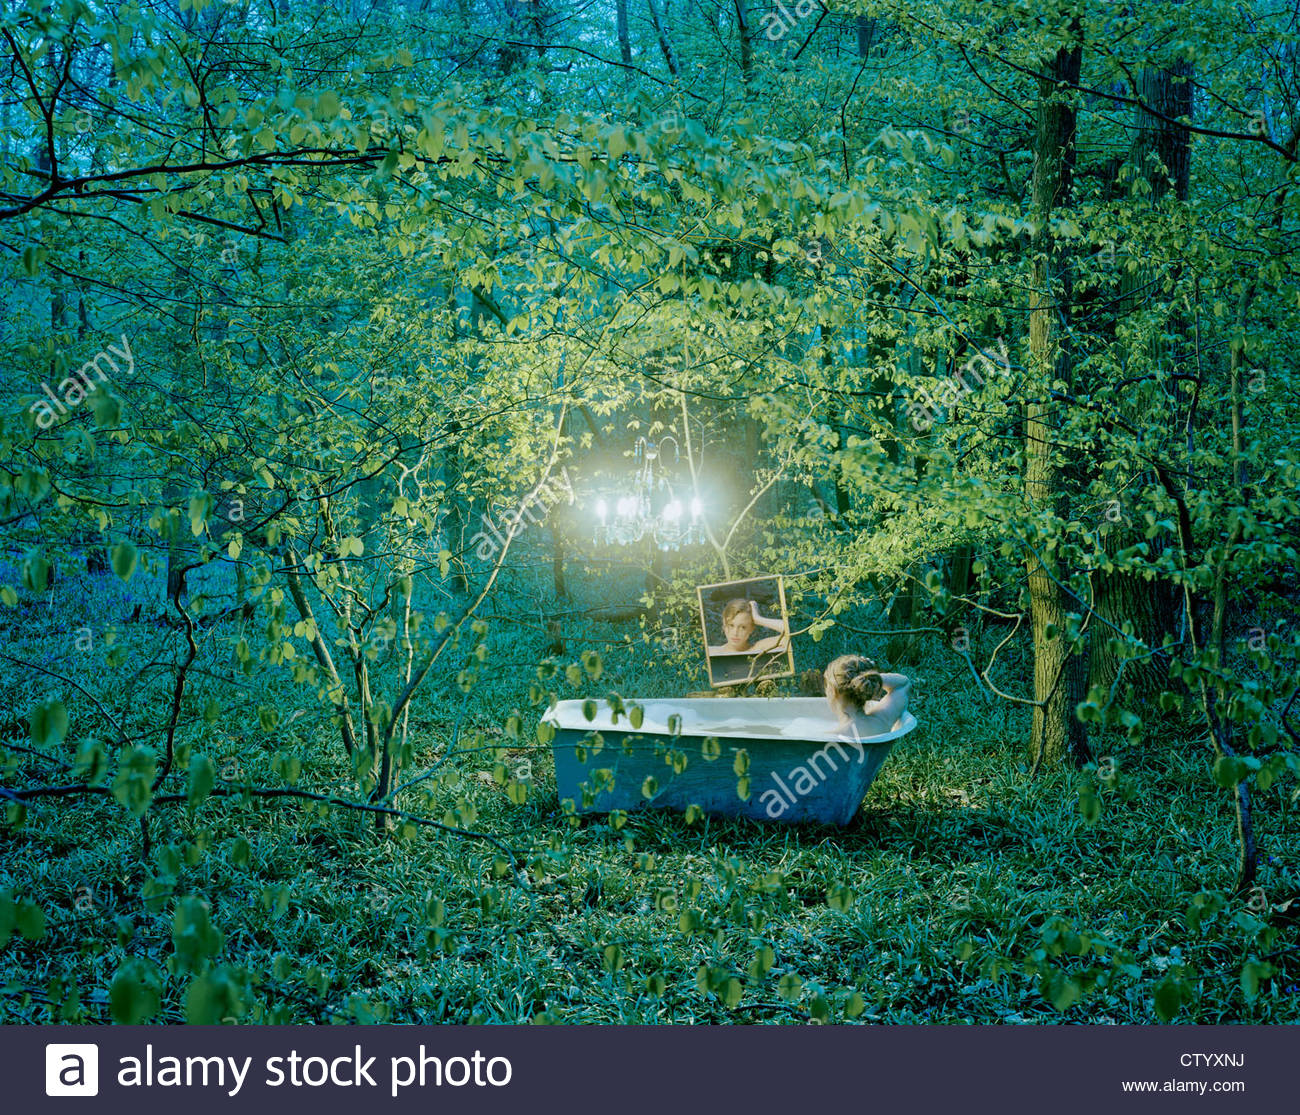 Woman bathing with mirror in forest - Stock Image